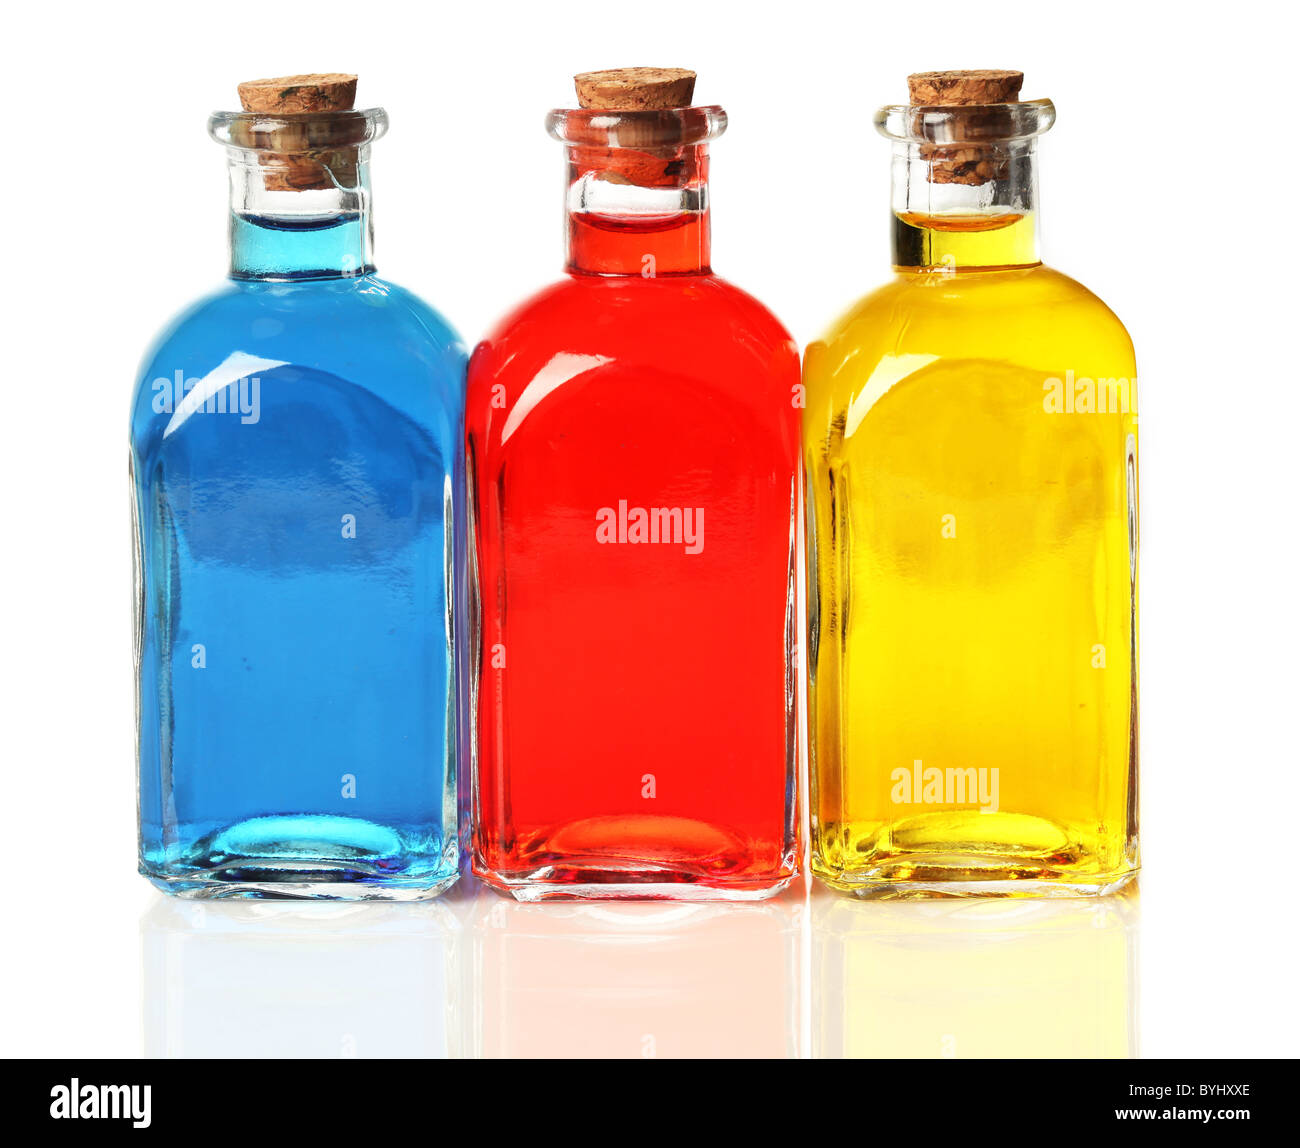 Blue, red, and yellow bottles - Stock Image